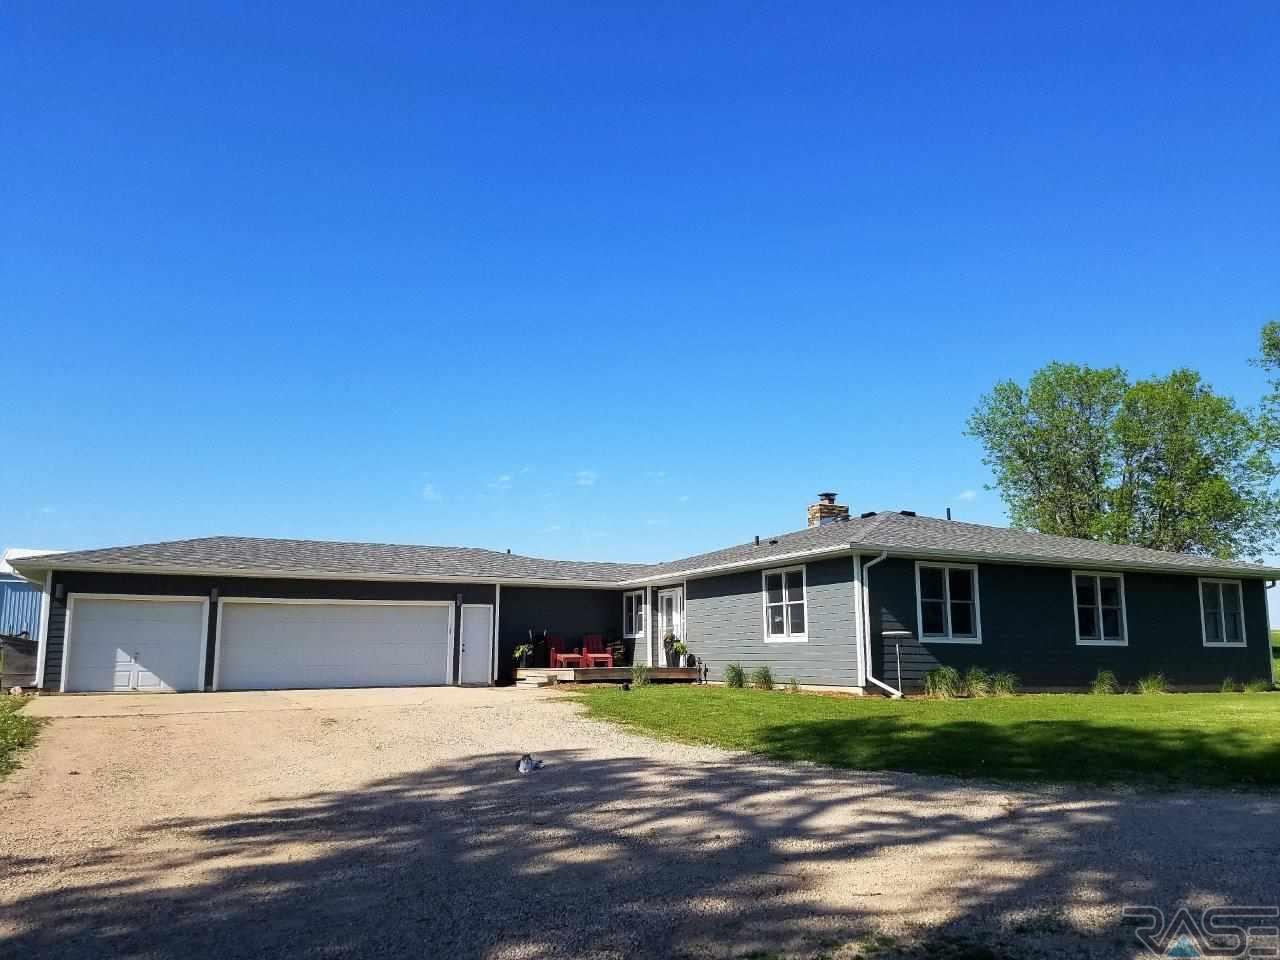 25523 N 476th Ave, Garretson, SD 57030